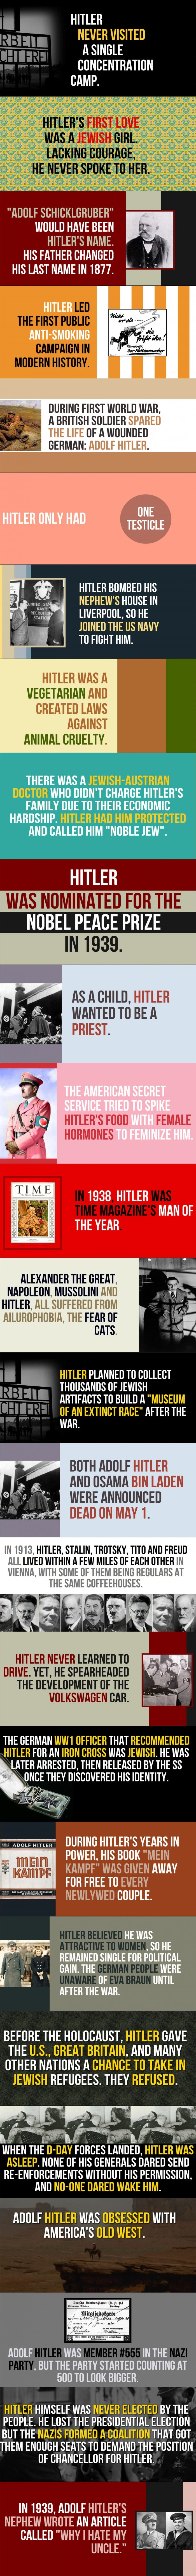 27 facts about Hitler